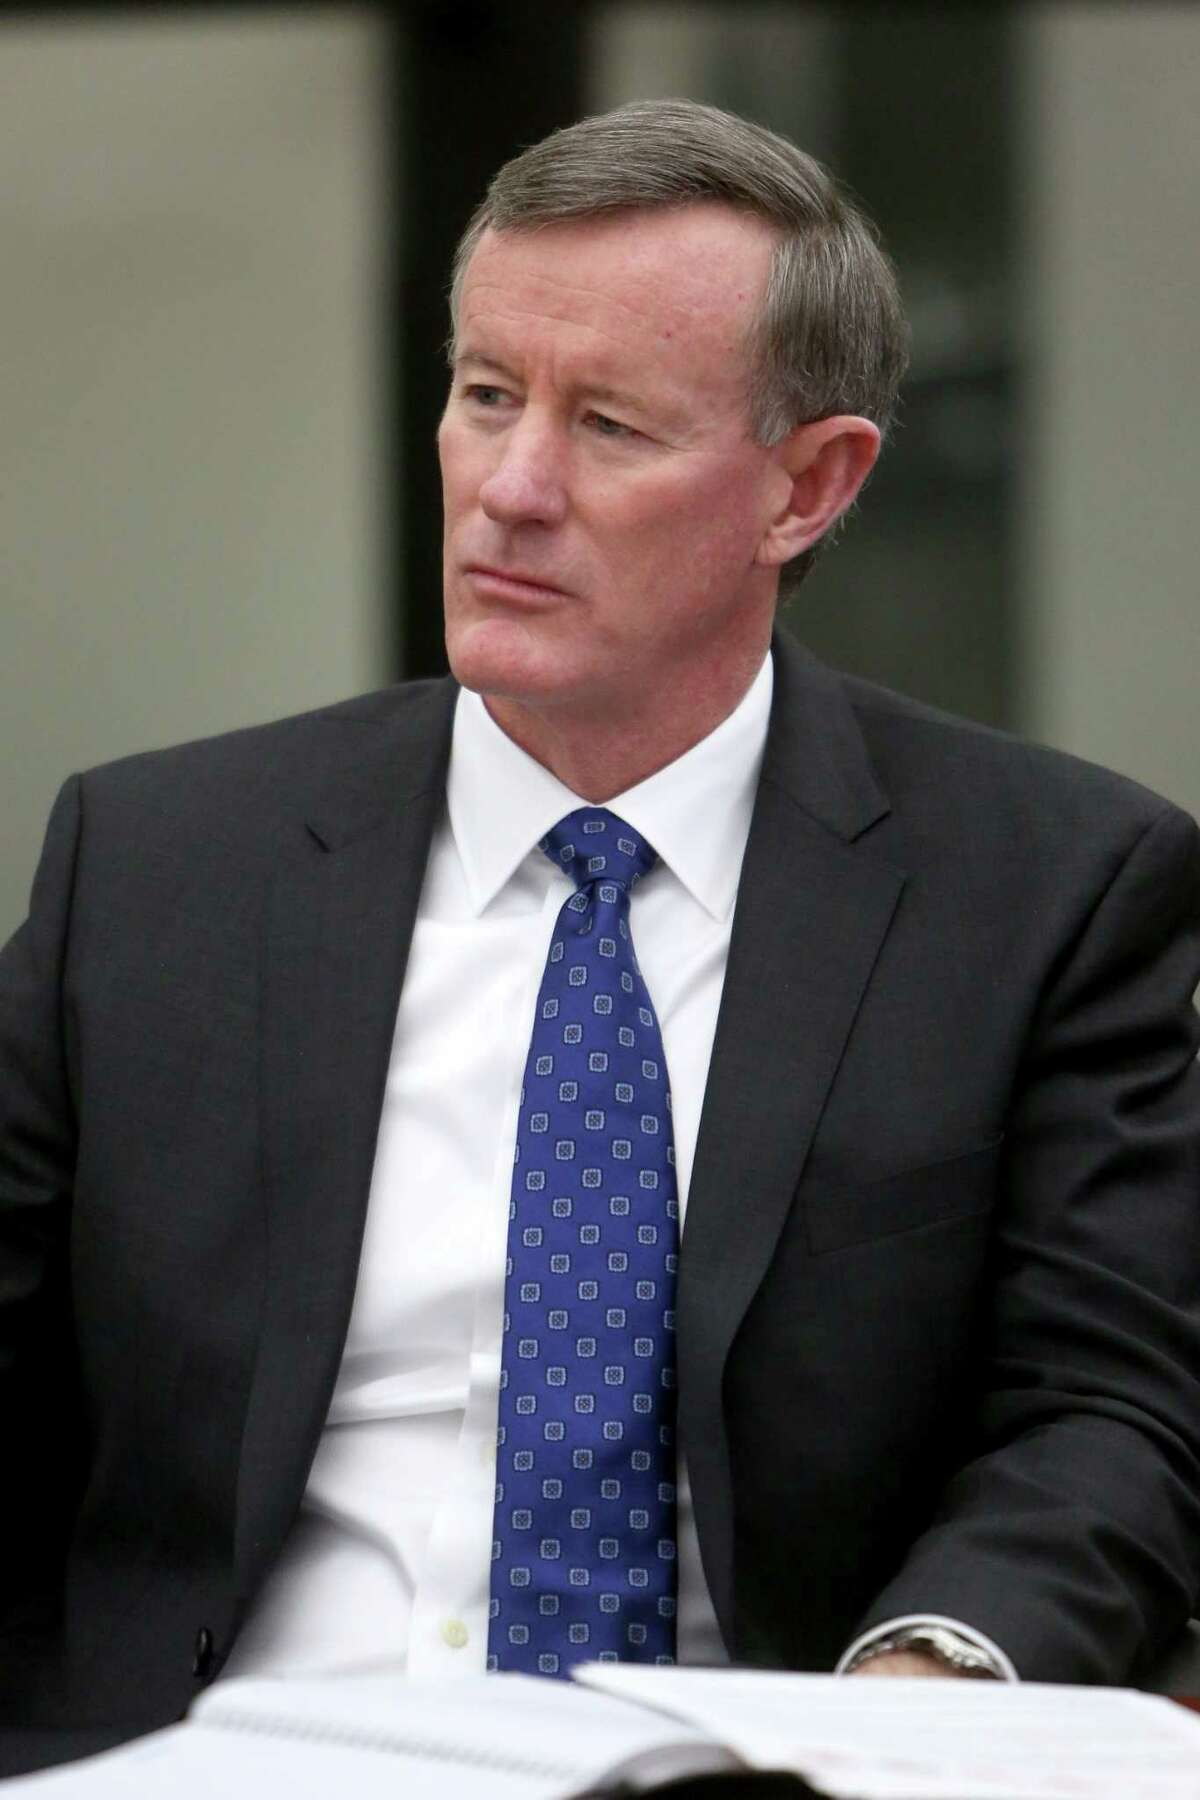 University of Texas Systems Chancellor William McRaven, in this 2015 photo, meets with the Chronicle's editorial board at the Houston Chronicle. (Gary Coronado / Houston Chronicle )